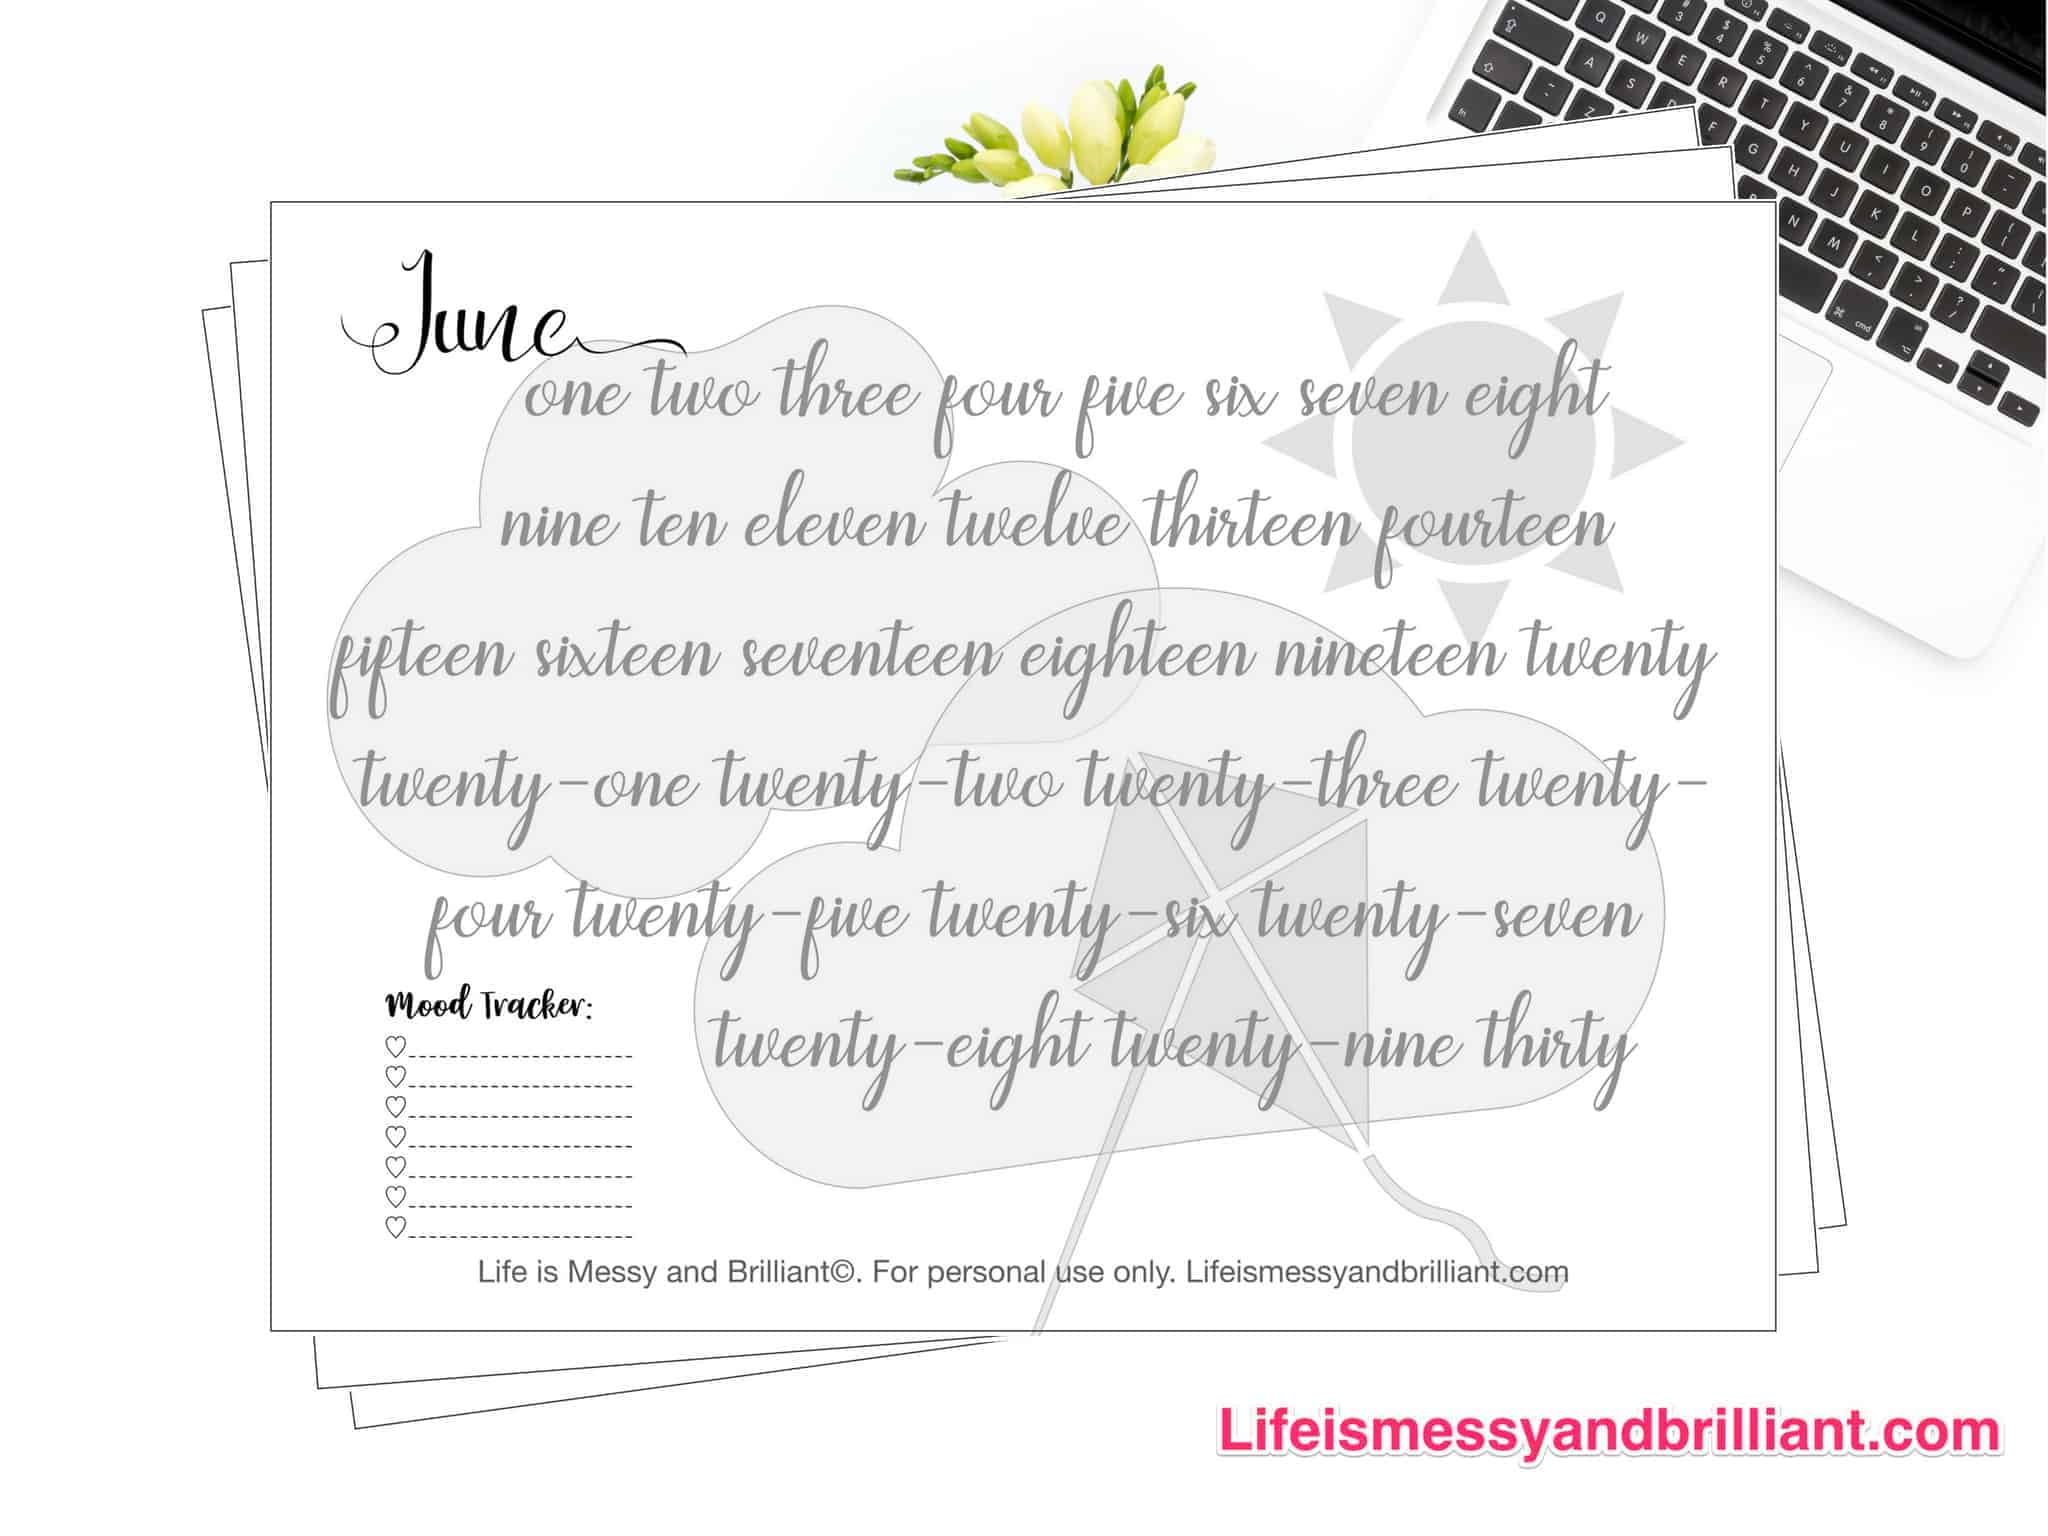 photo relating to Mood Tracker Printable identify Totally free Bullet Magazine Temper Tracker Printables